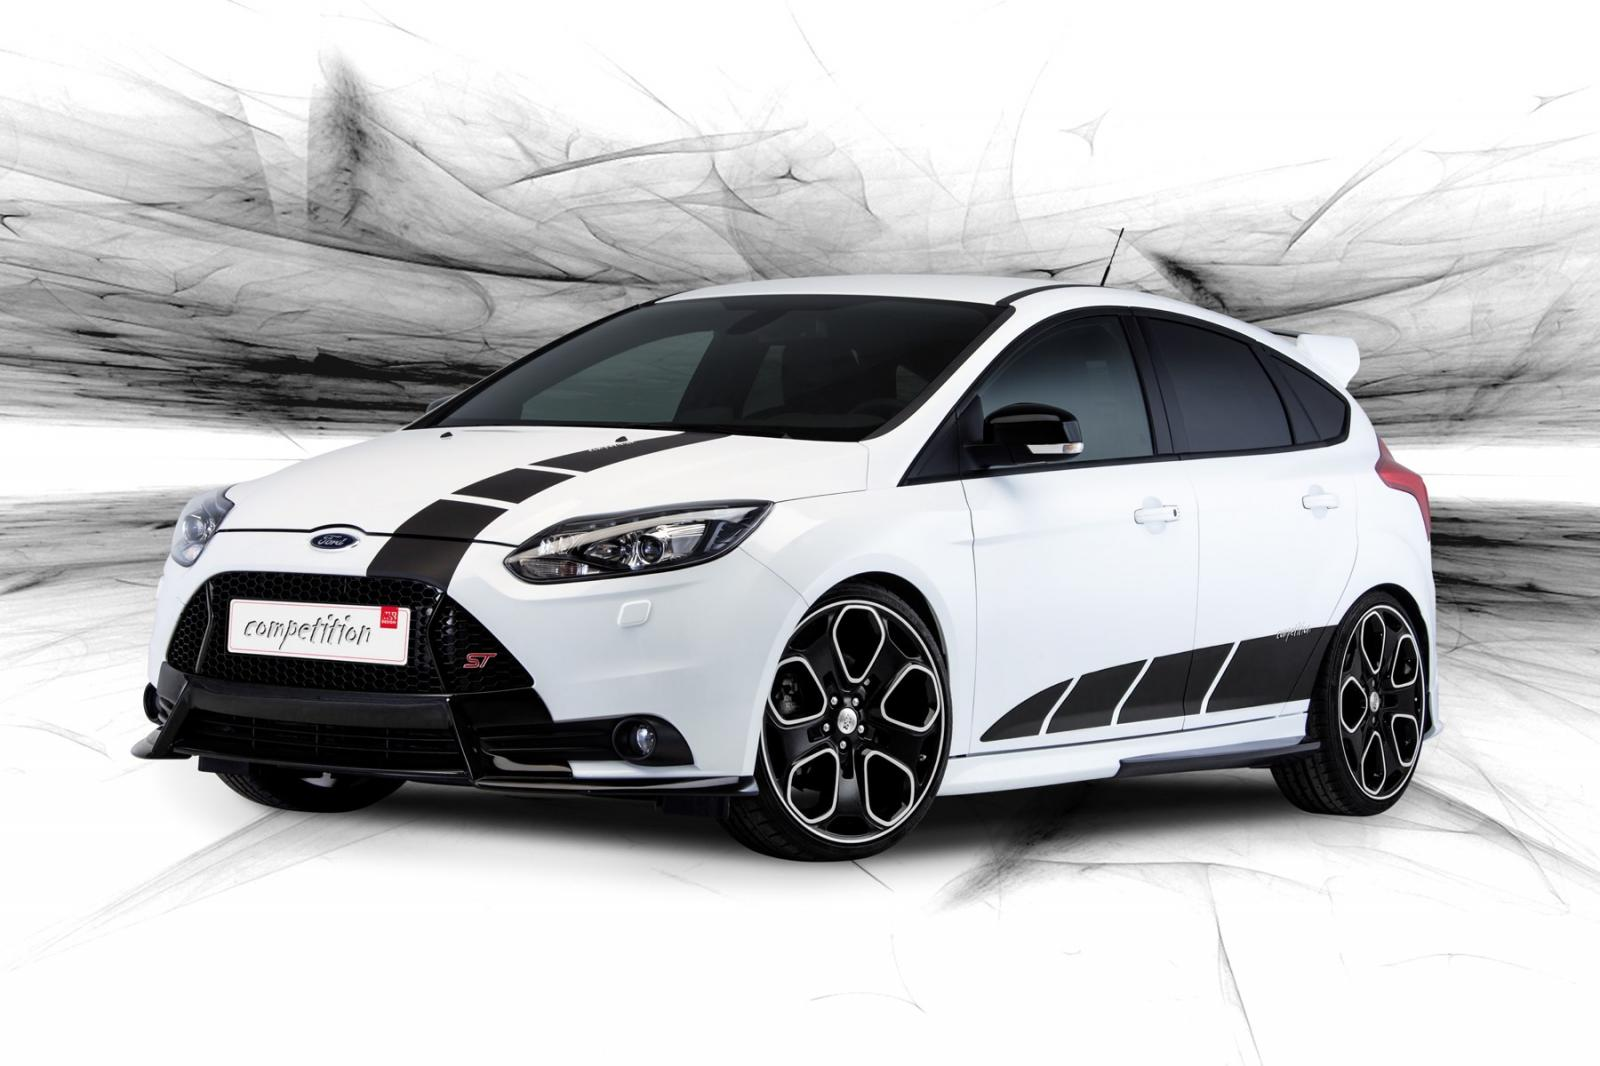 2013 Ms Design Ford Focus St Tuning Wallpaper 1600x1066 82152 Wallpaperup